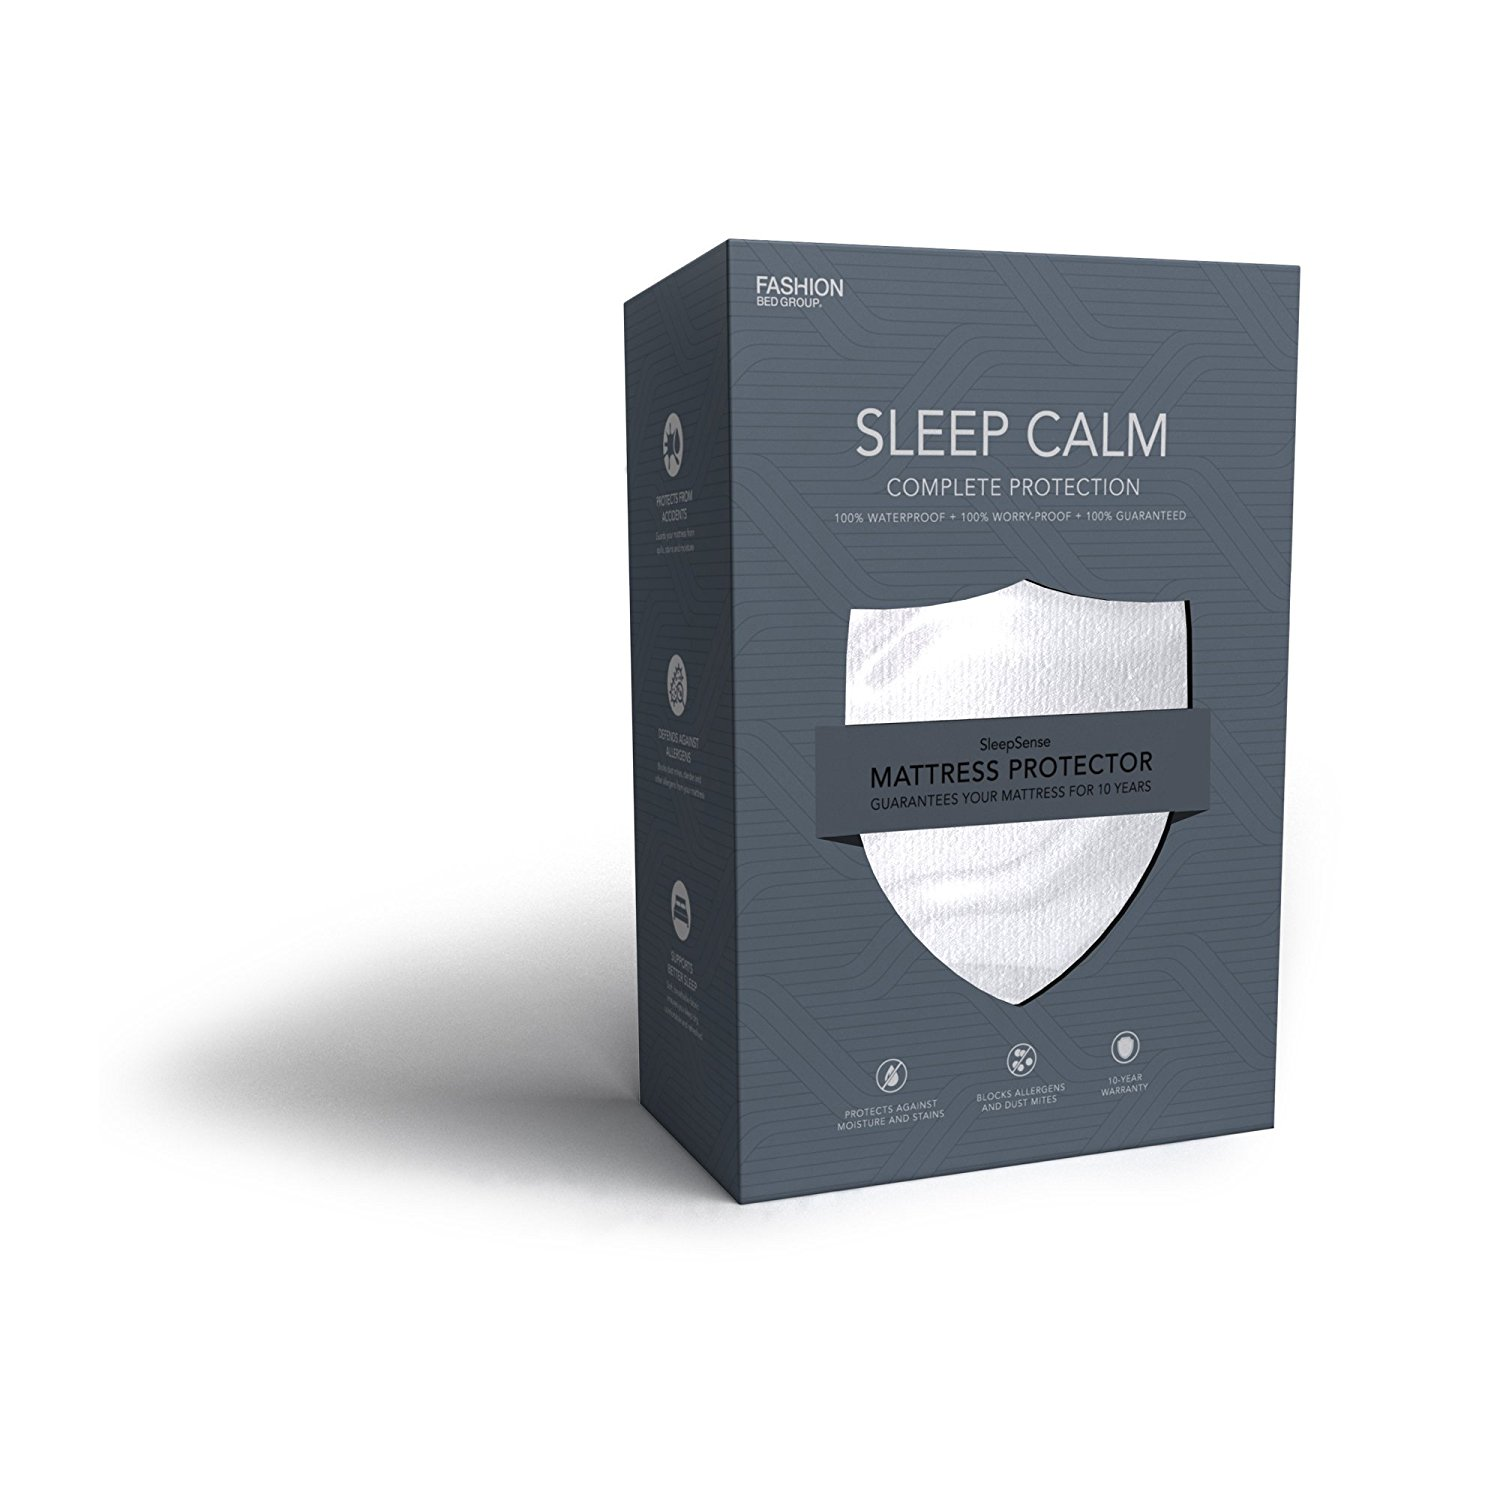 Sleep Calm Platinum Mattress Protector Image